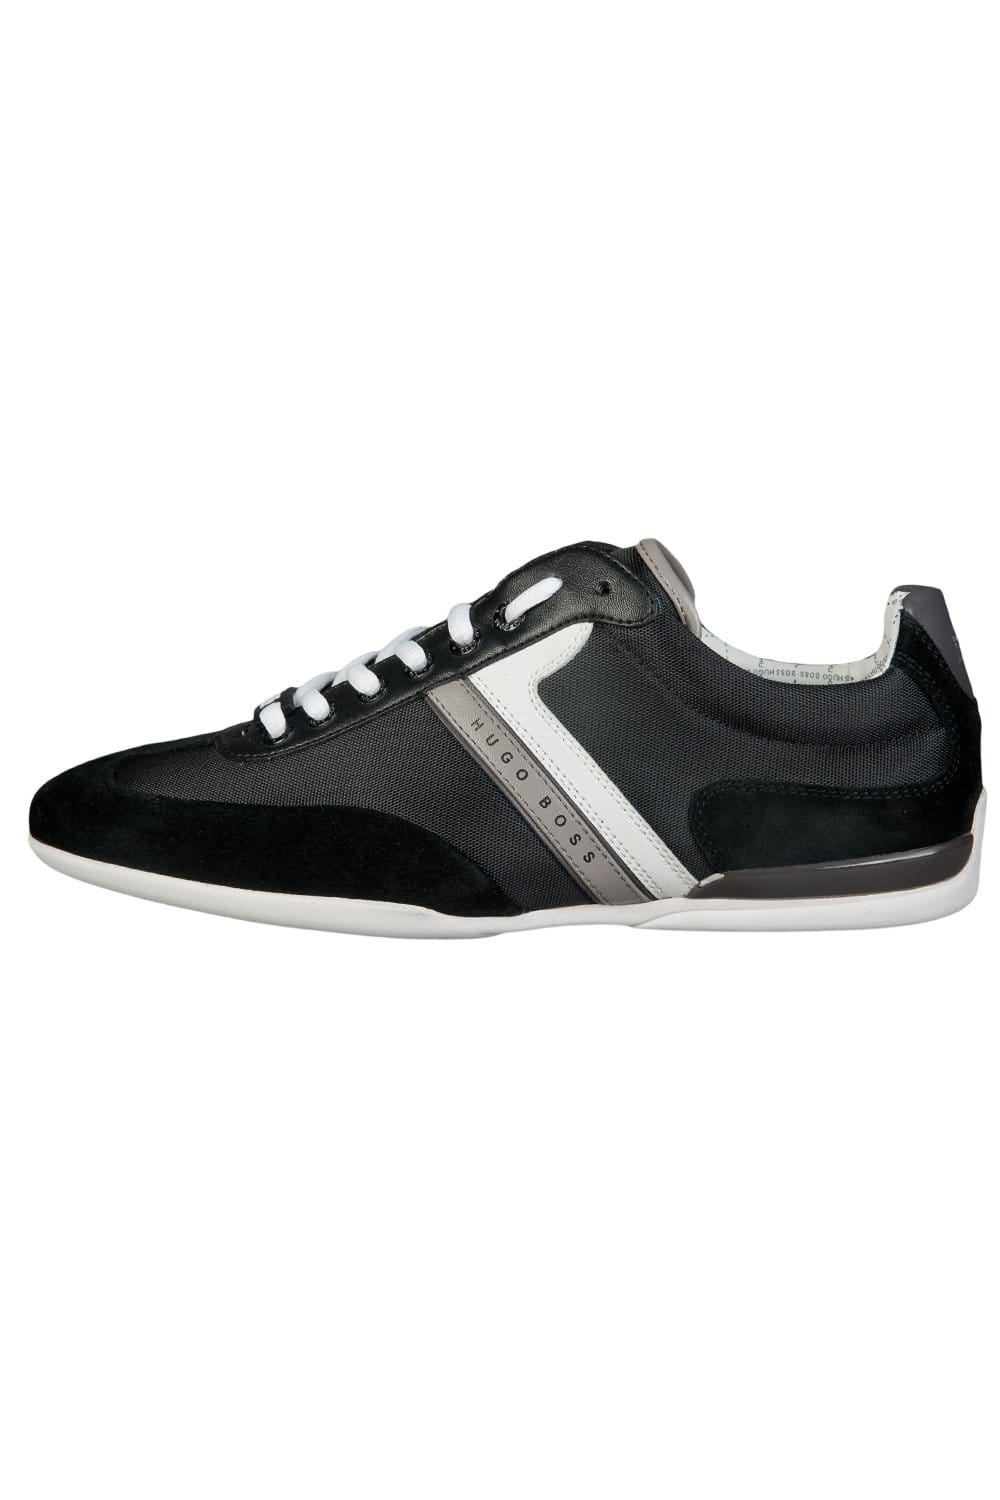 hugo boss green leather mix sneakers in black spacito 50292894 boss green from sage clothing uk. Black Bedroom Furniture Sets. Home Design Ideas